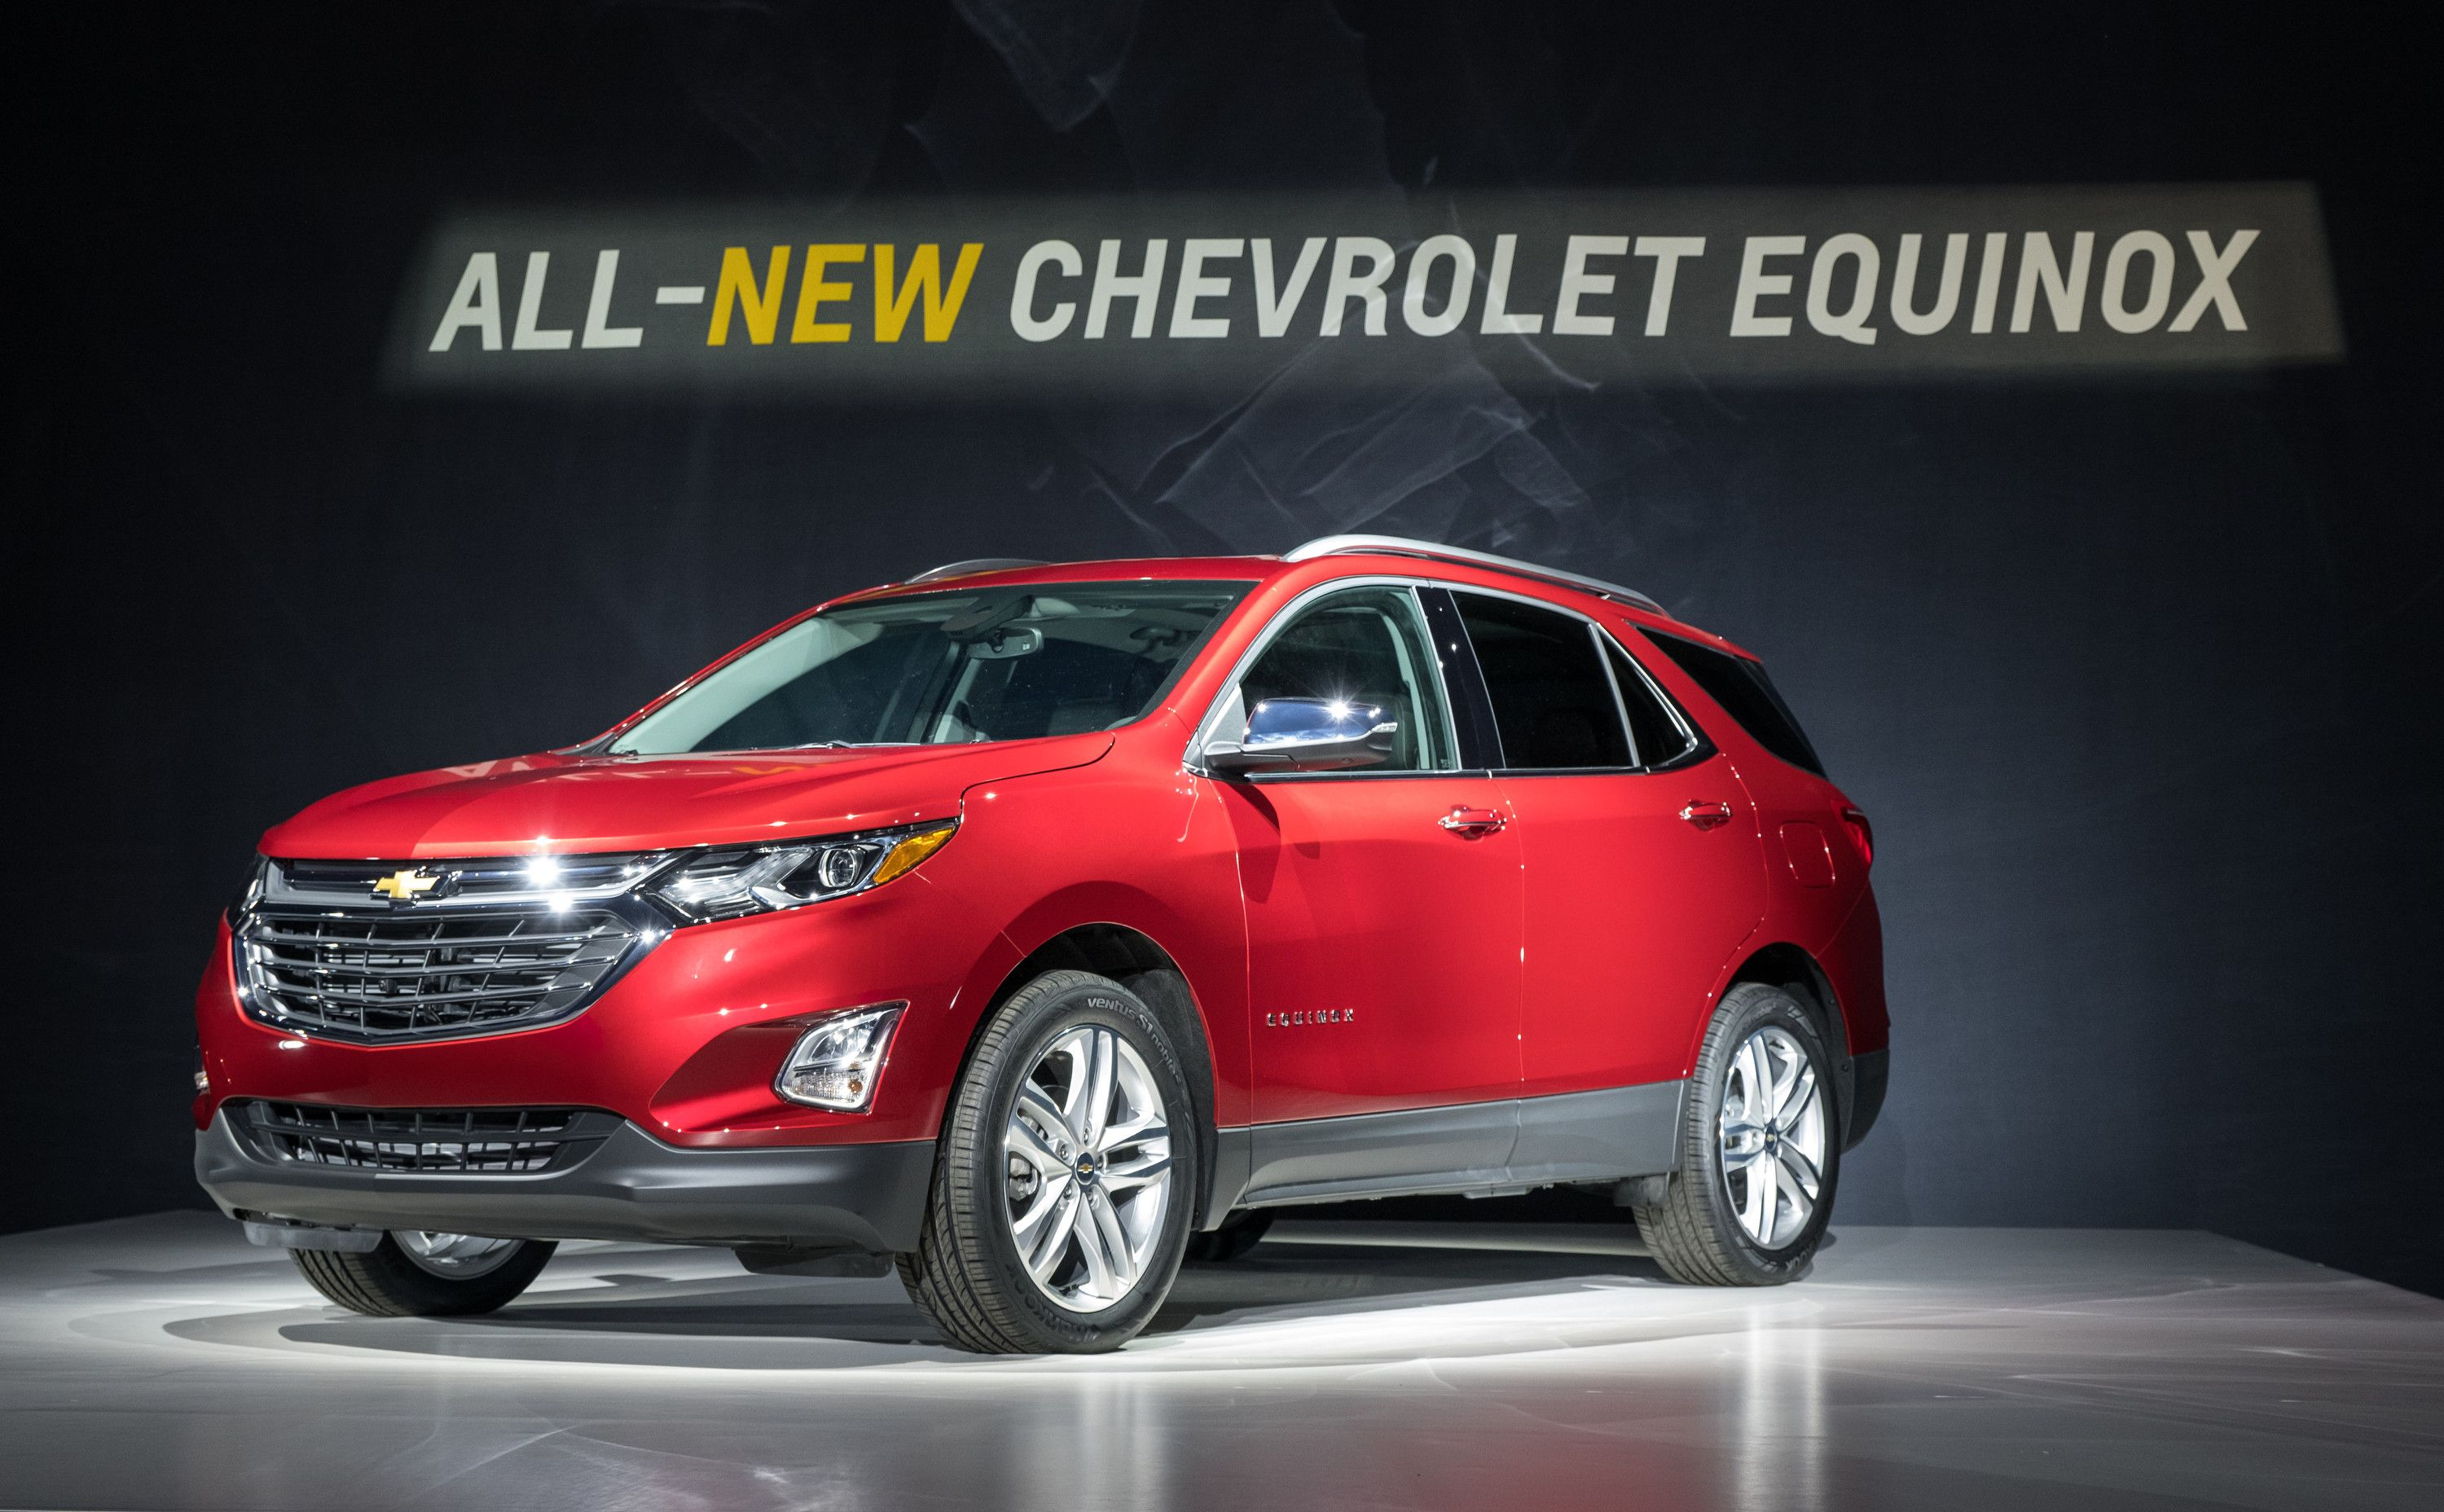 The Chevrolet Equinox Has Been Completely Redesigned For The 2018 Model Year A Chevrolet Equinox Chevy Equinox Chevrolet